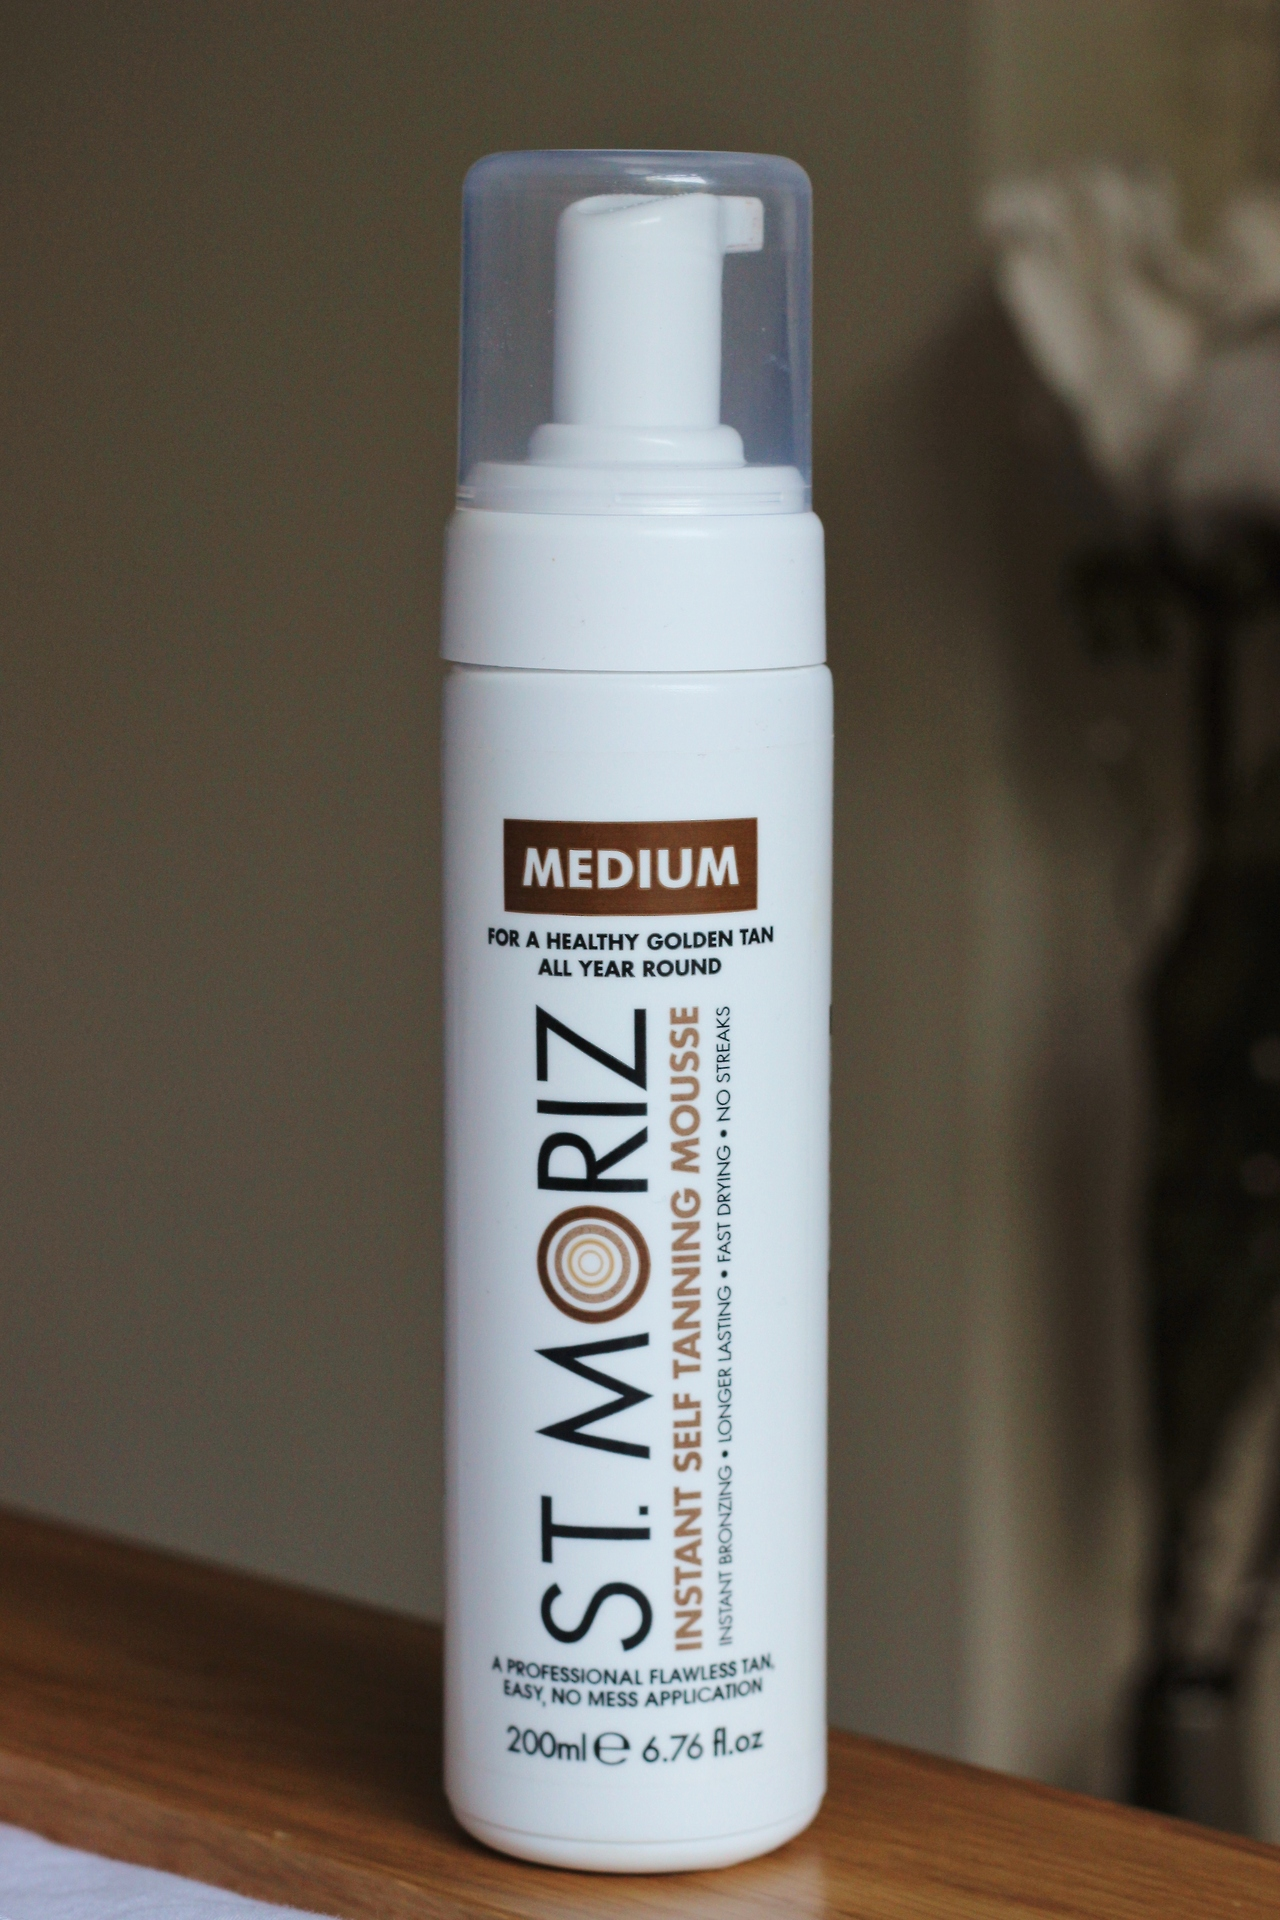 St Moriz Instant Self Tanning Mousse Medium Review